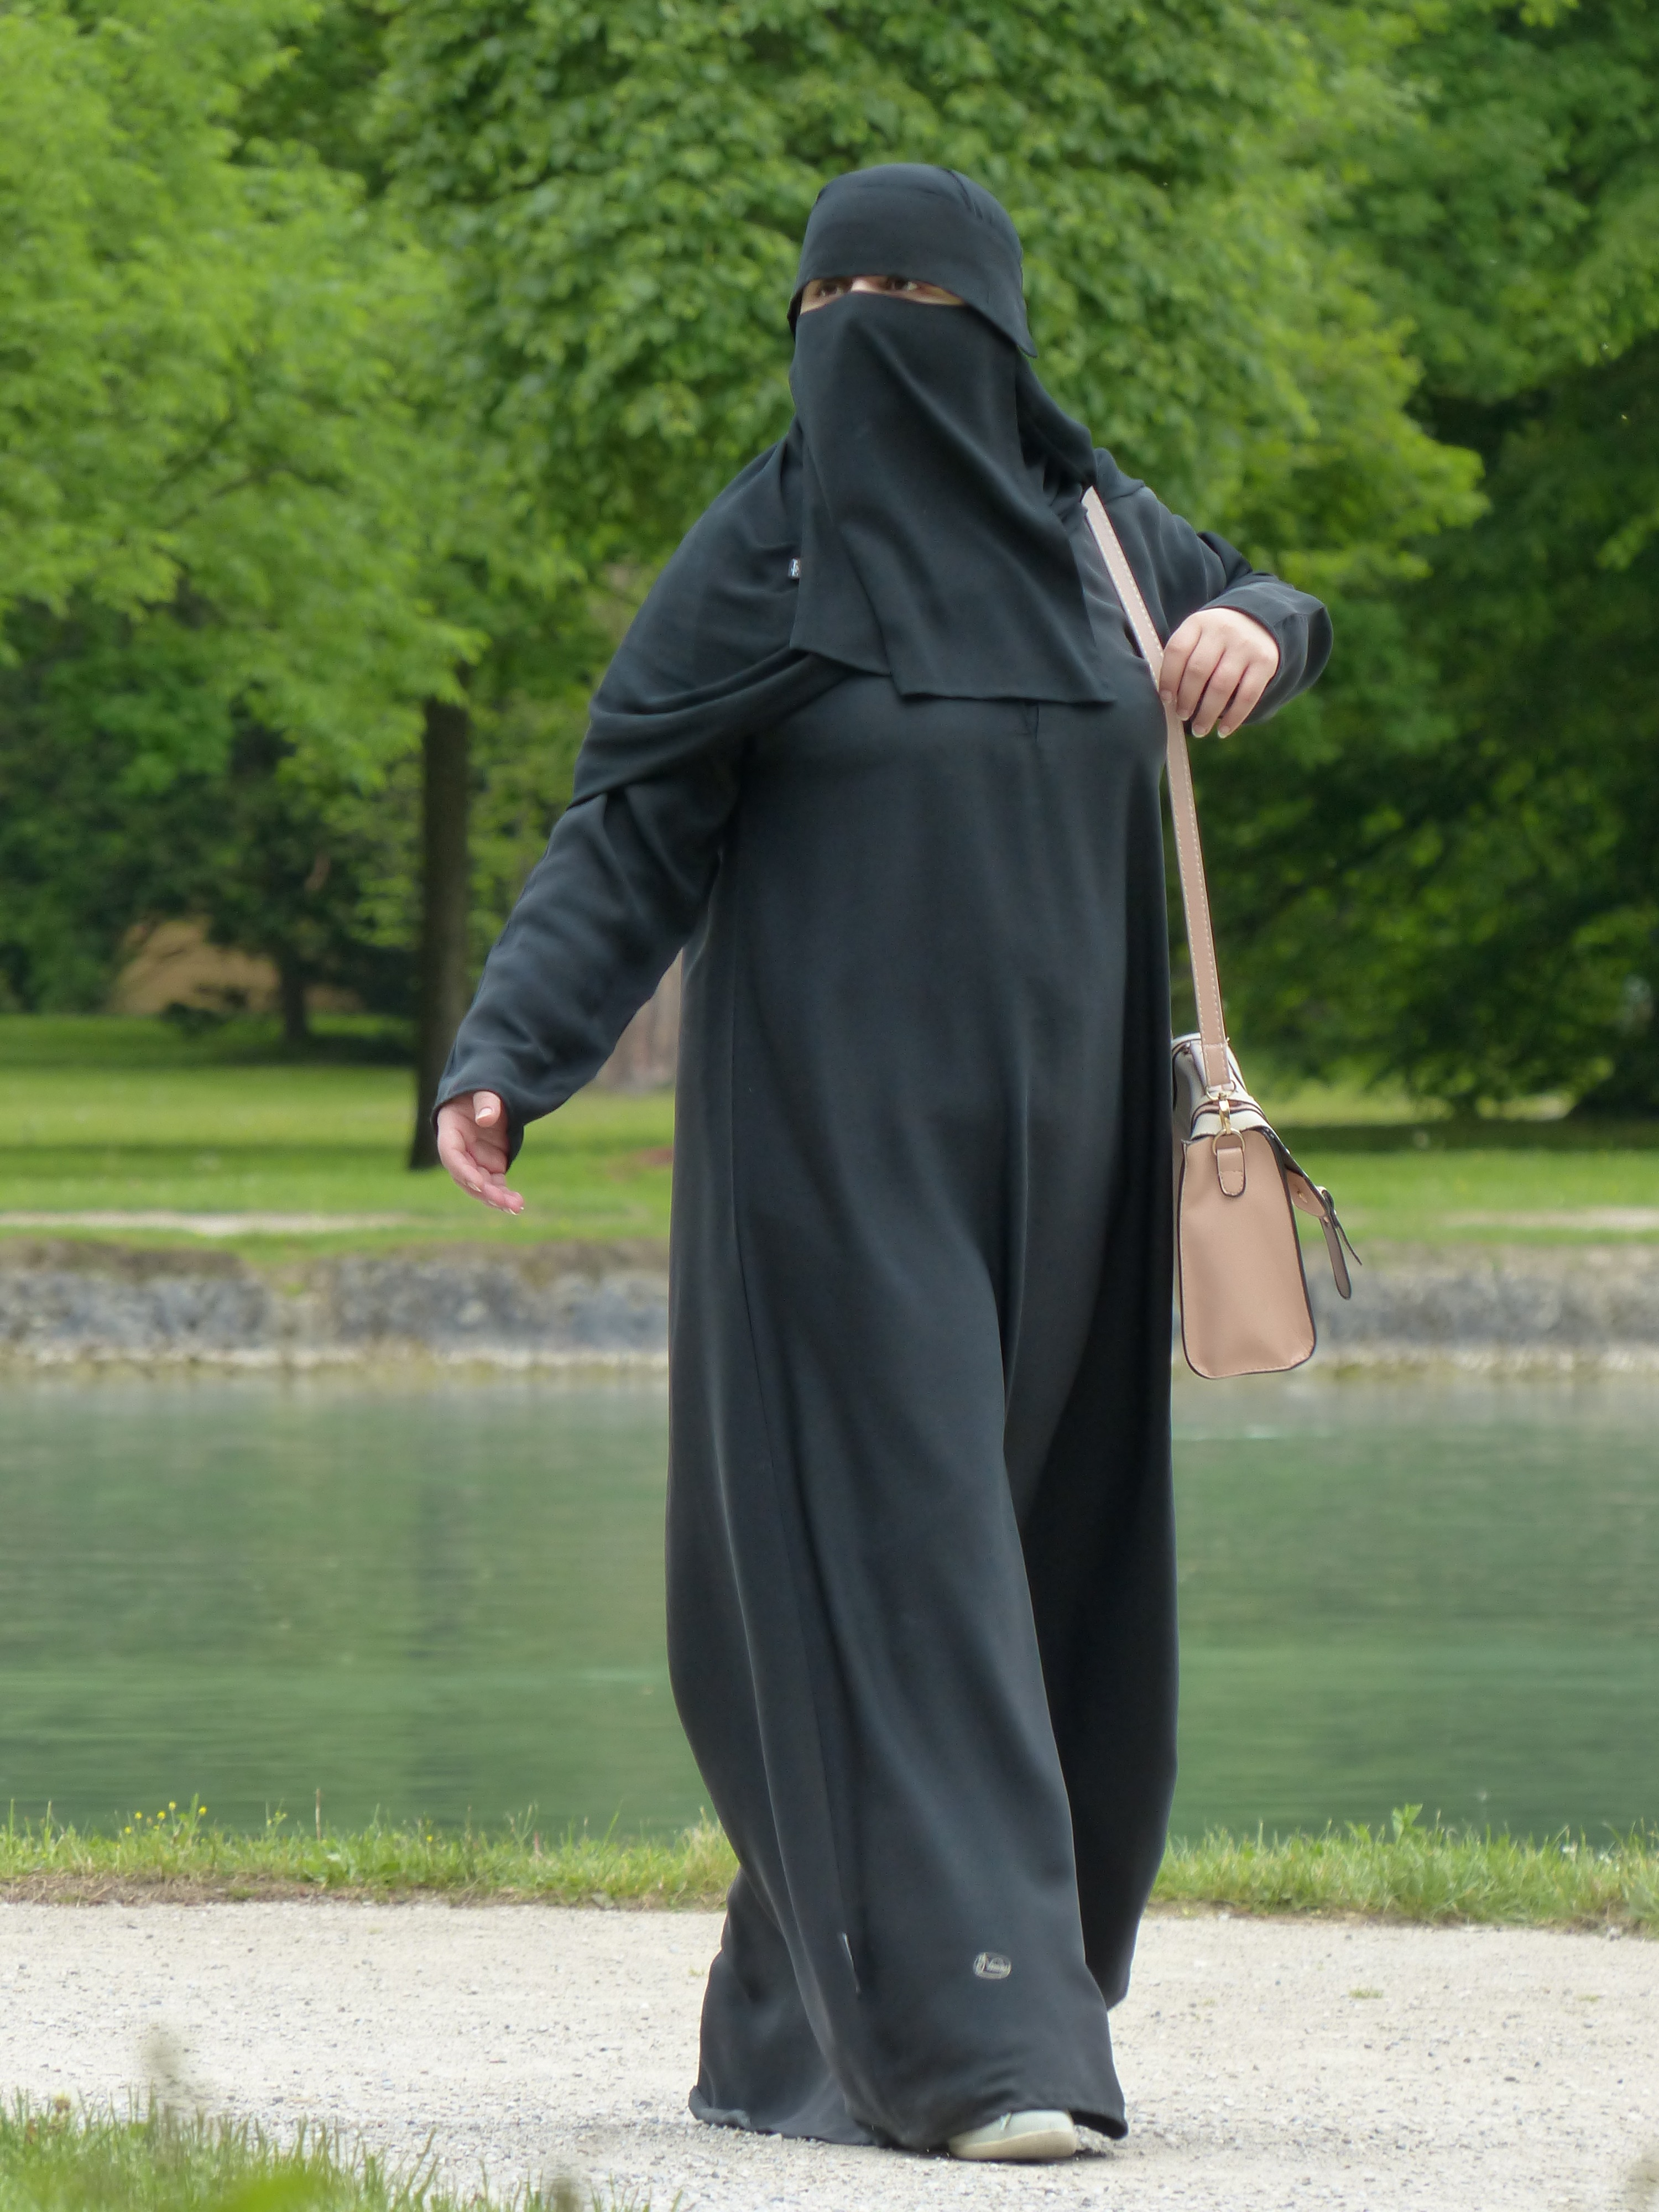 Bavaria approves partial ban on full-face veil